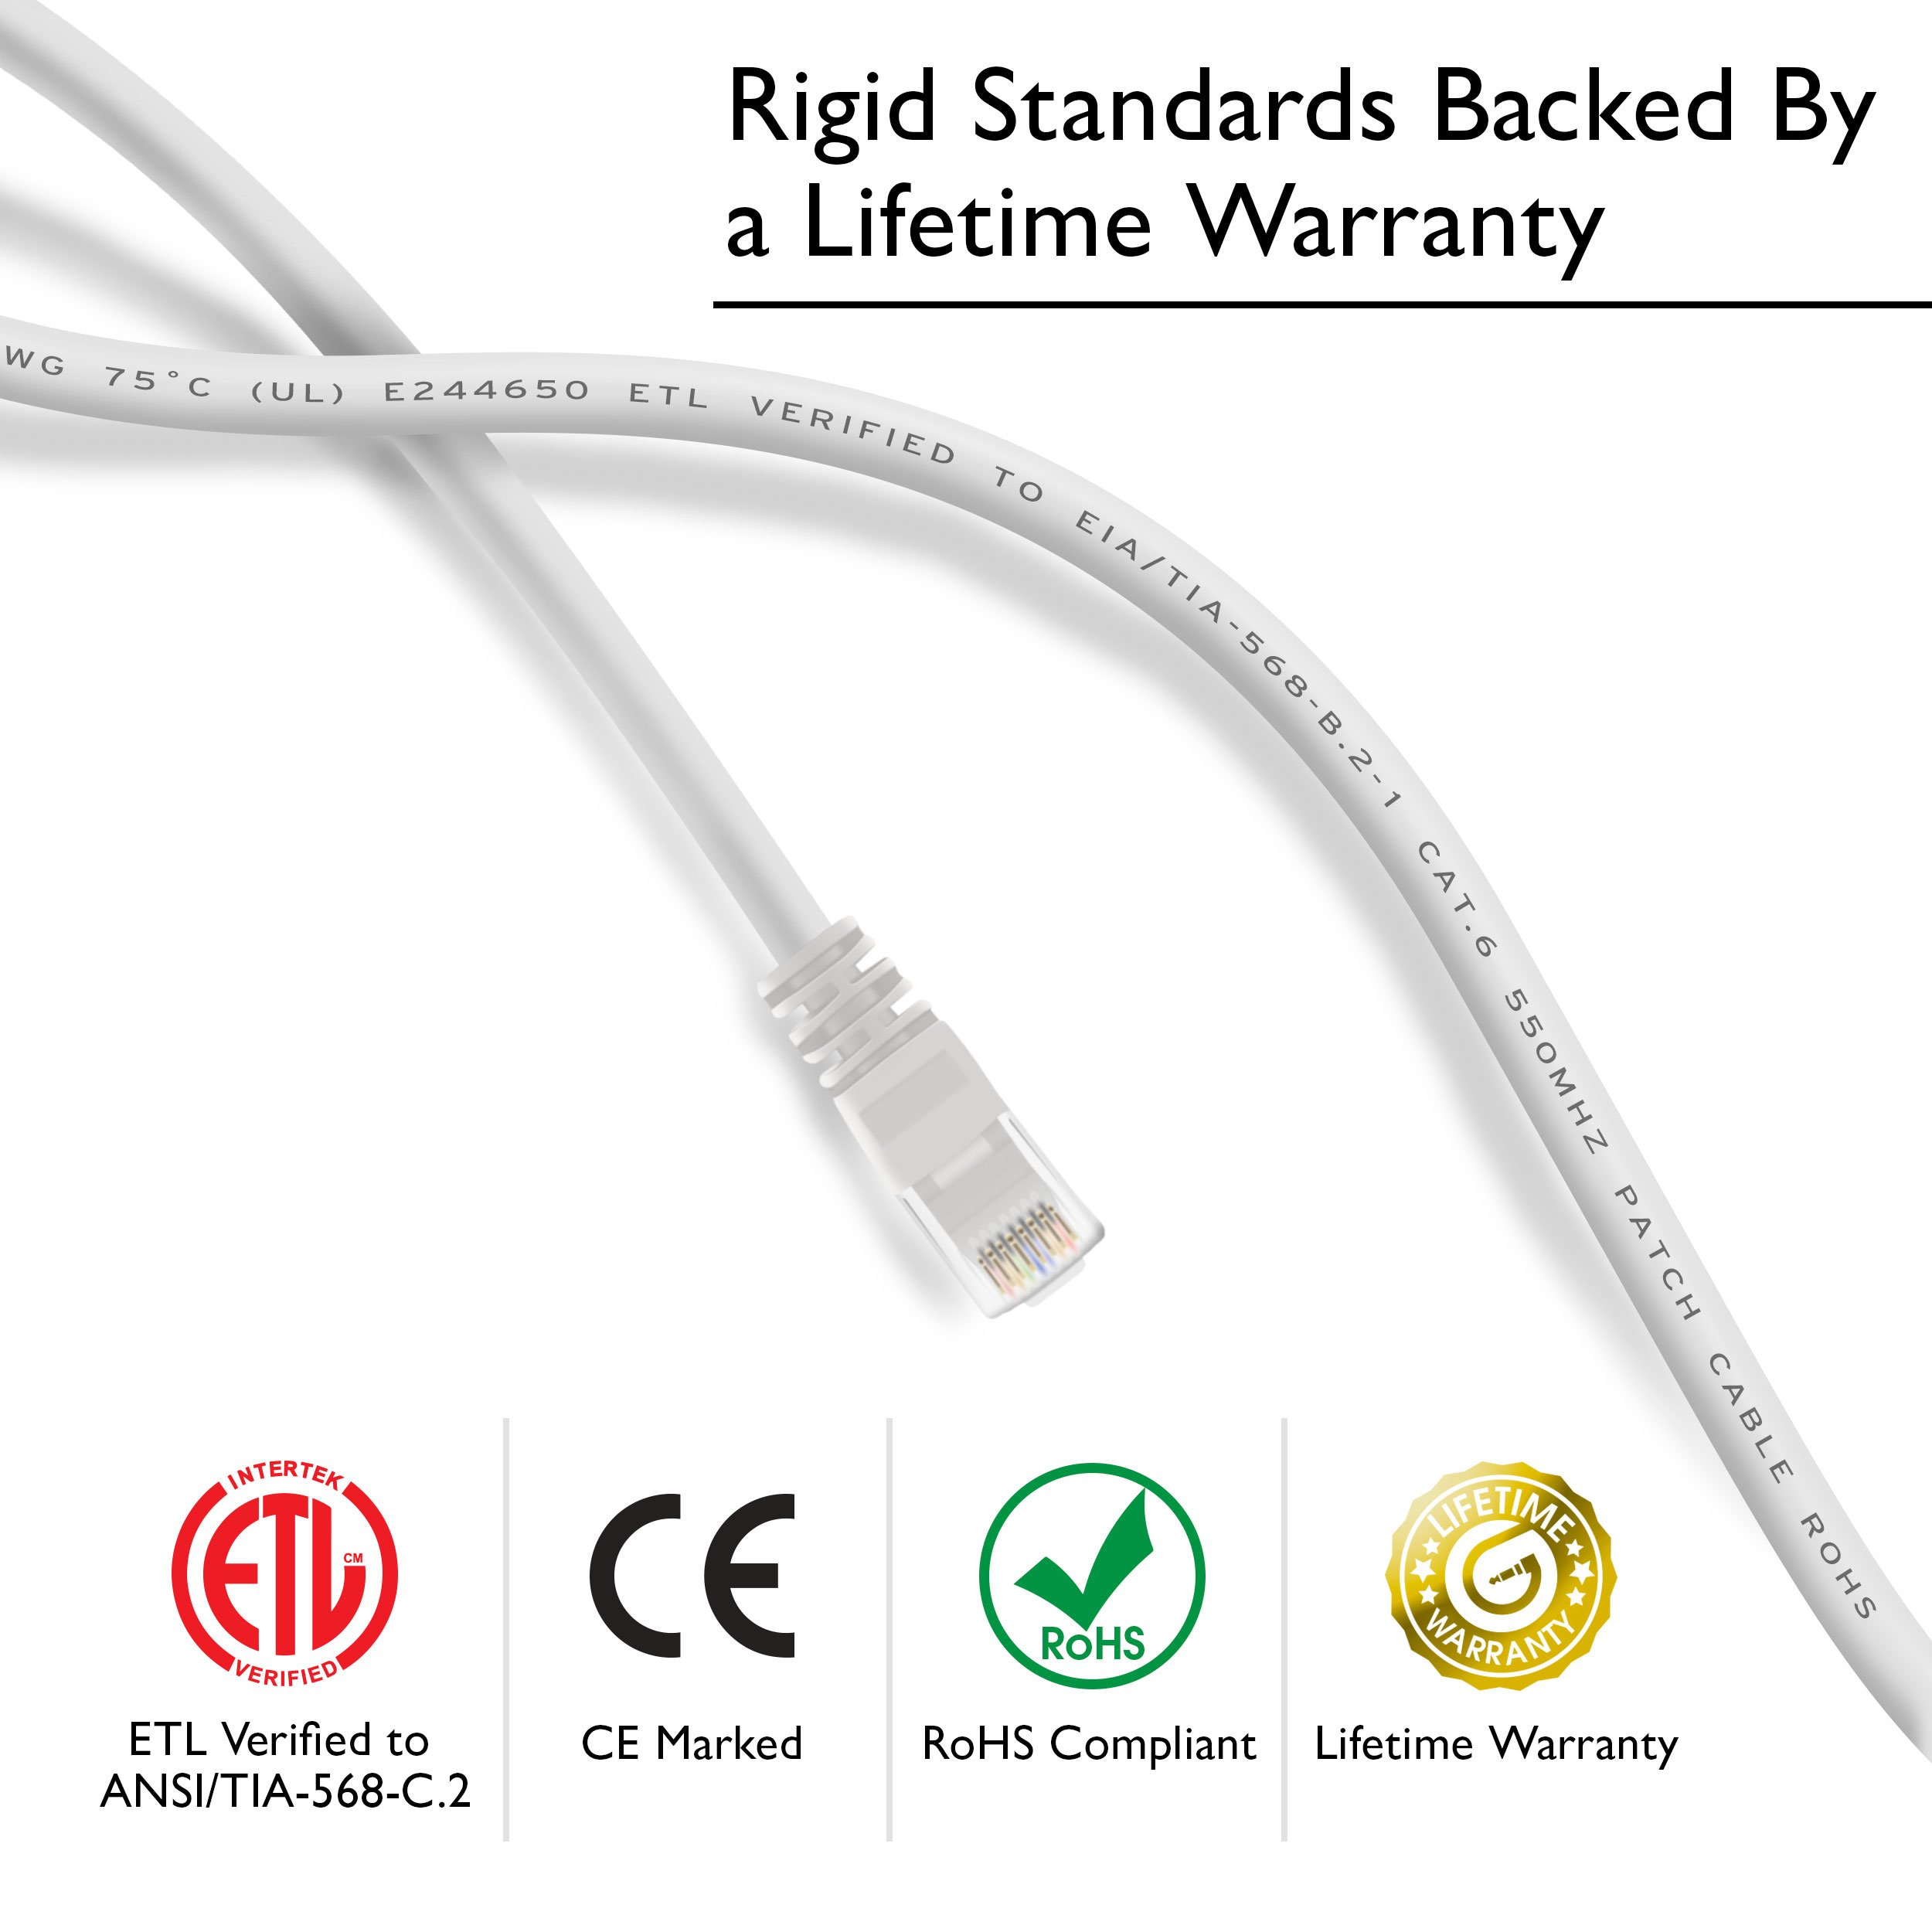 GearIT 100-Pack, Cat 6 Ethernet Cable Cat6 Snagless Patch 3 Feet - Snagless RJ45 Computer LAN Network Cord, White - Compatible with 48 Port Switch POE Rackmount 48port Gigabit by GearIT (Image #3)